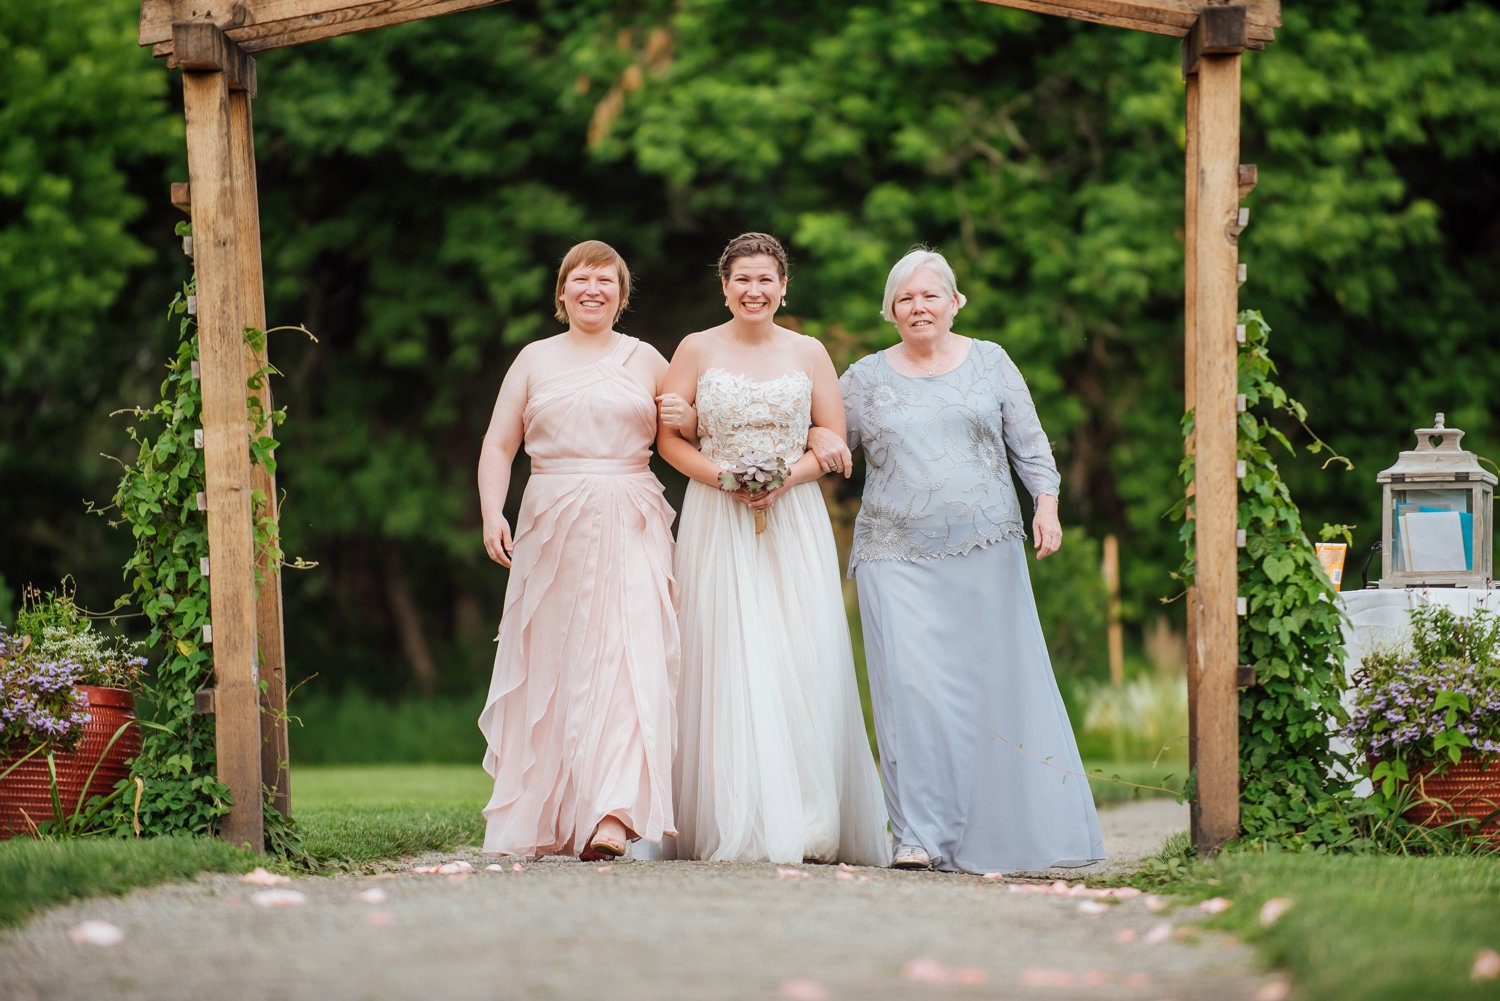 I love nontraditional weddings where the bride is being walked down the aisle by her family.Photo by Maddie Mae Photography